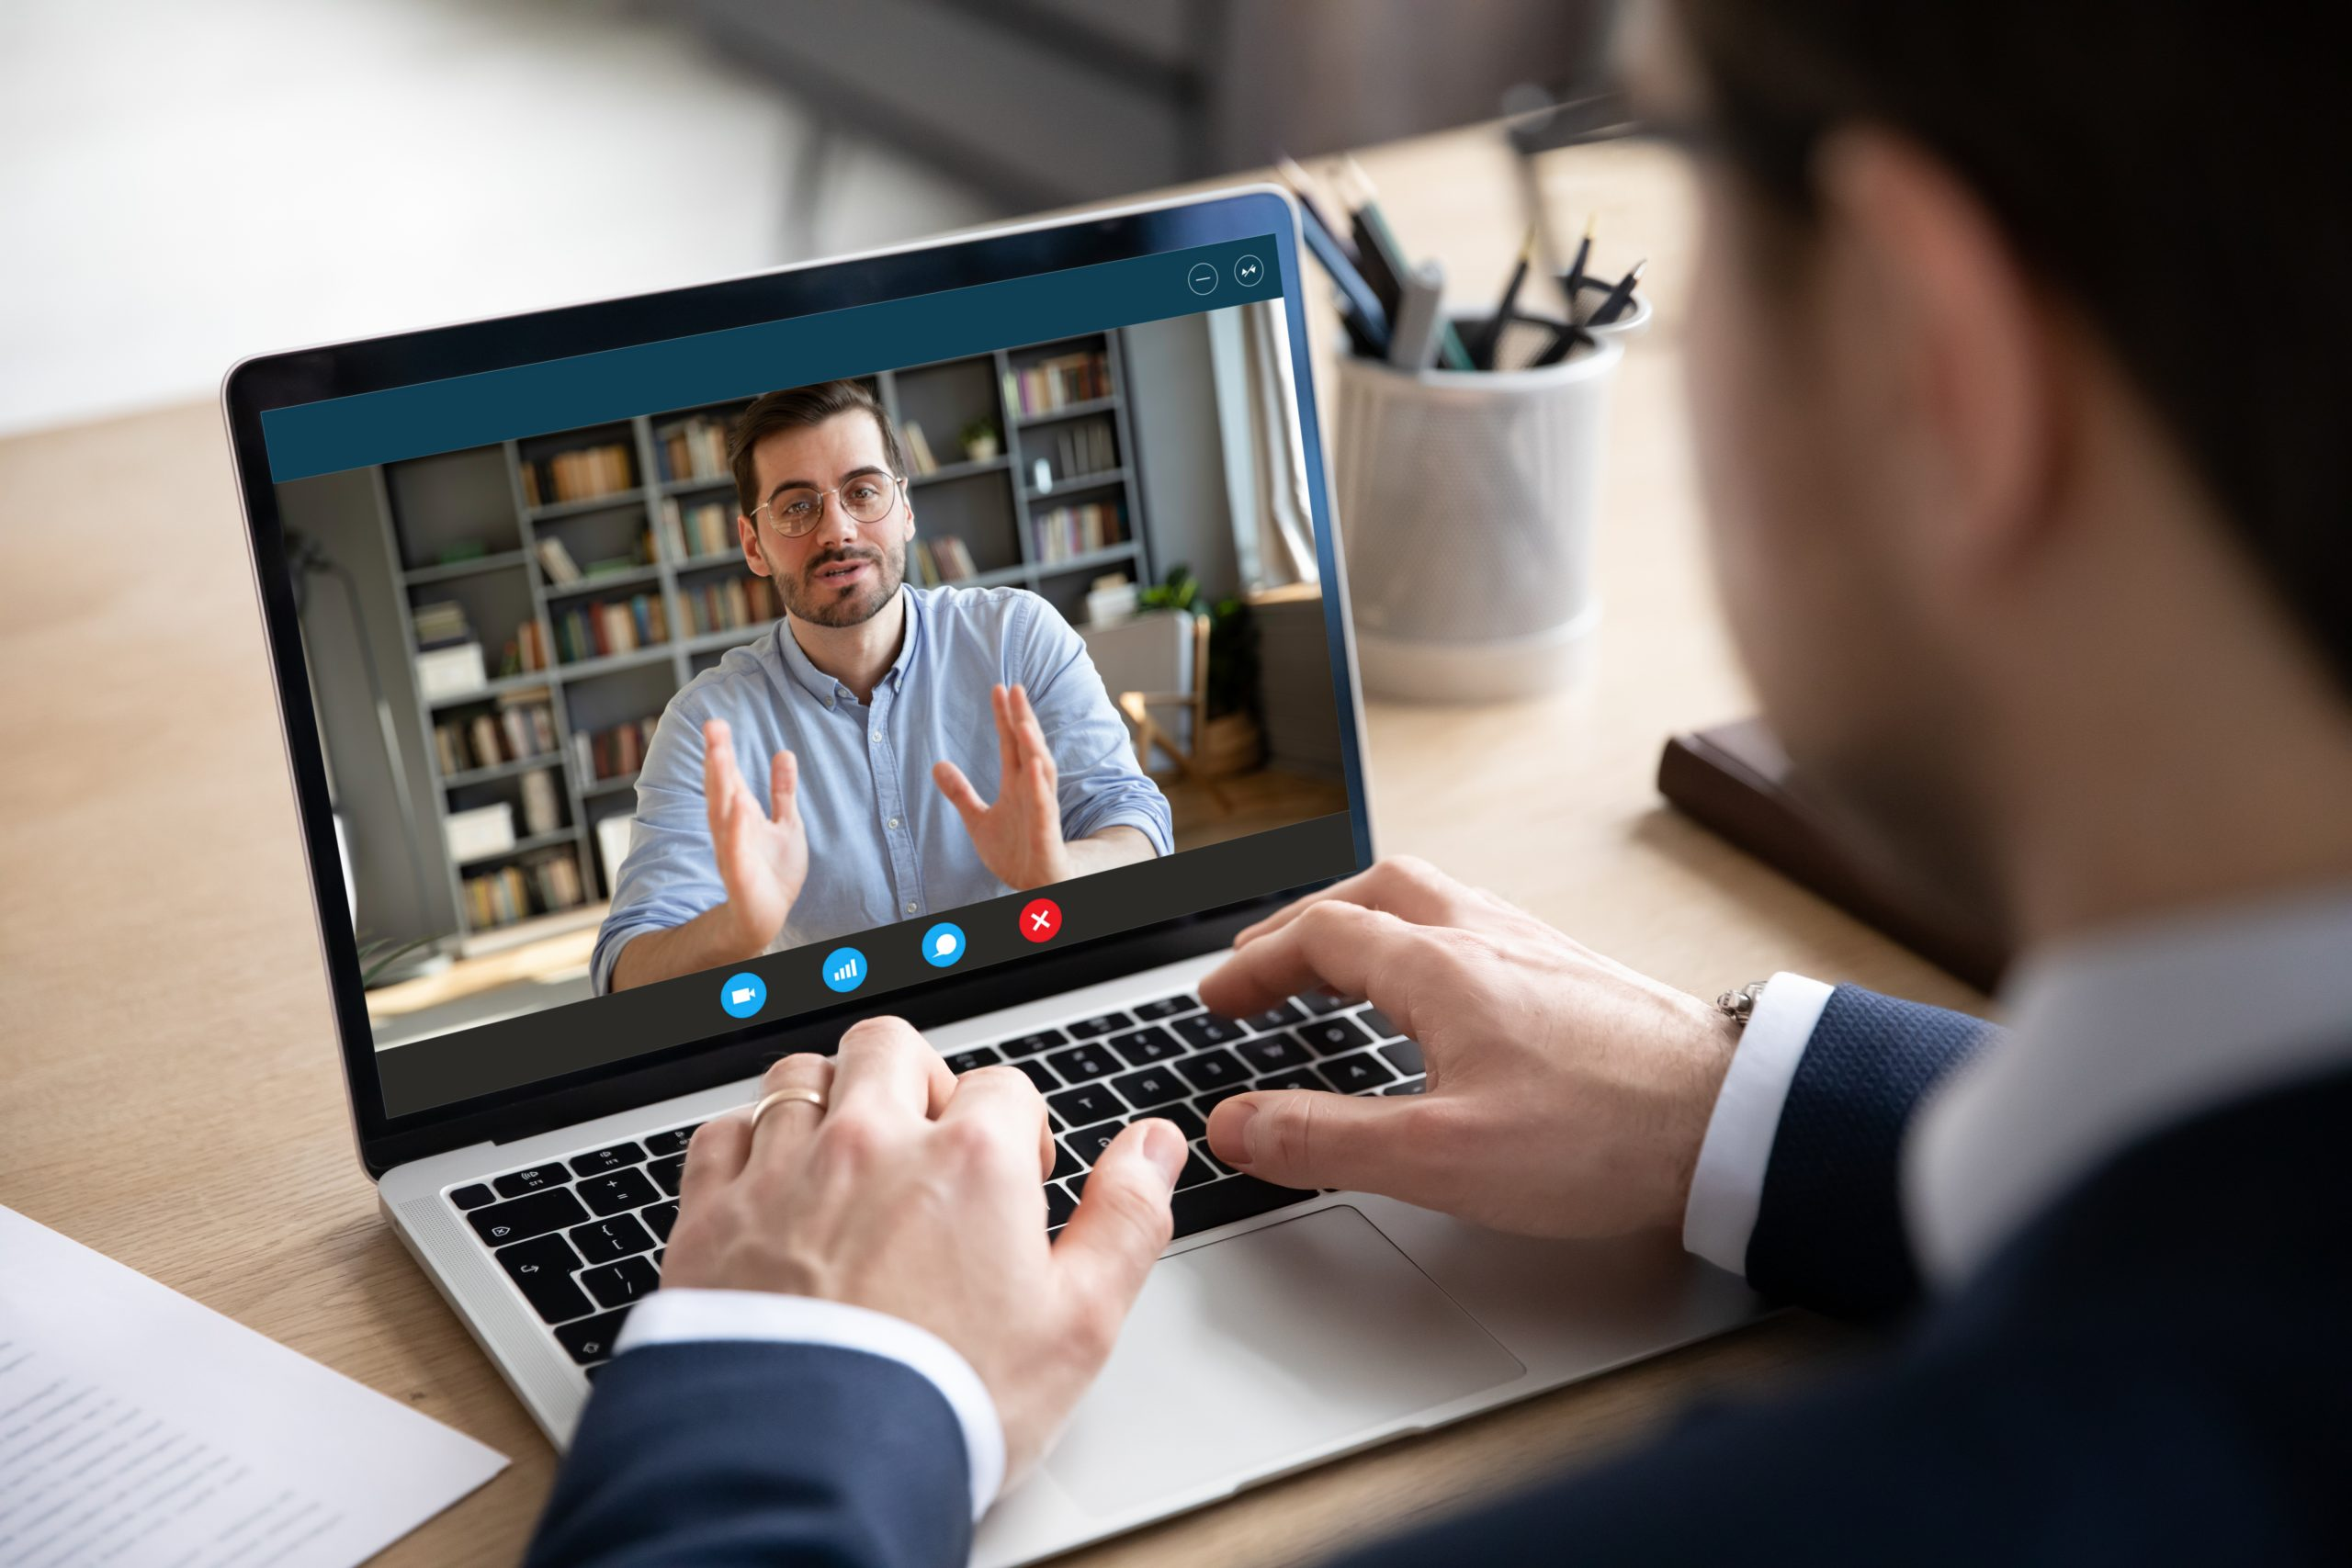 4 Tips to Nail Your Next Online Interview